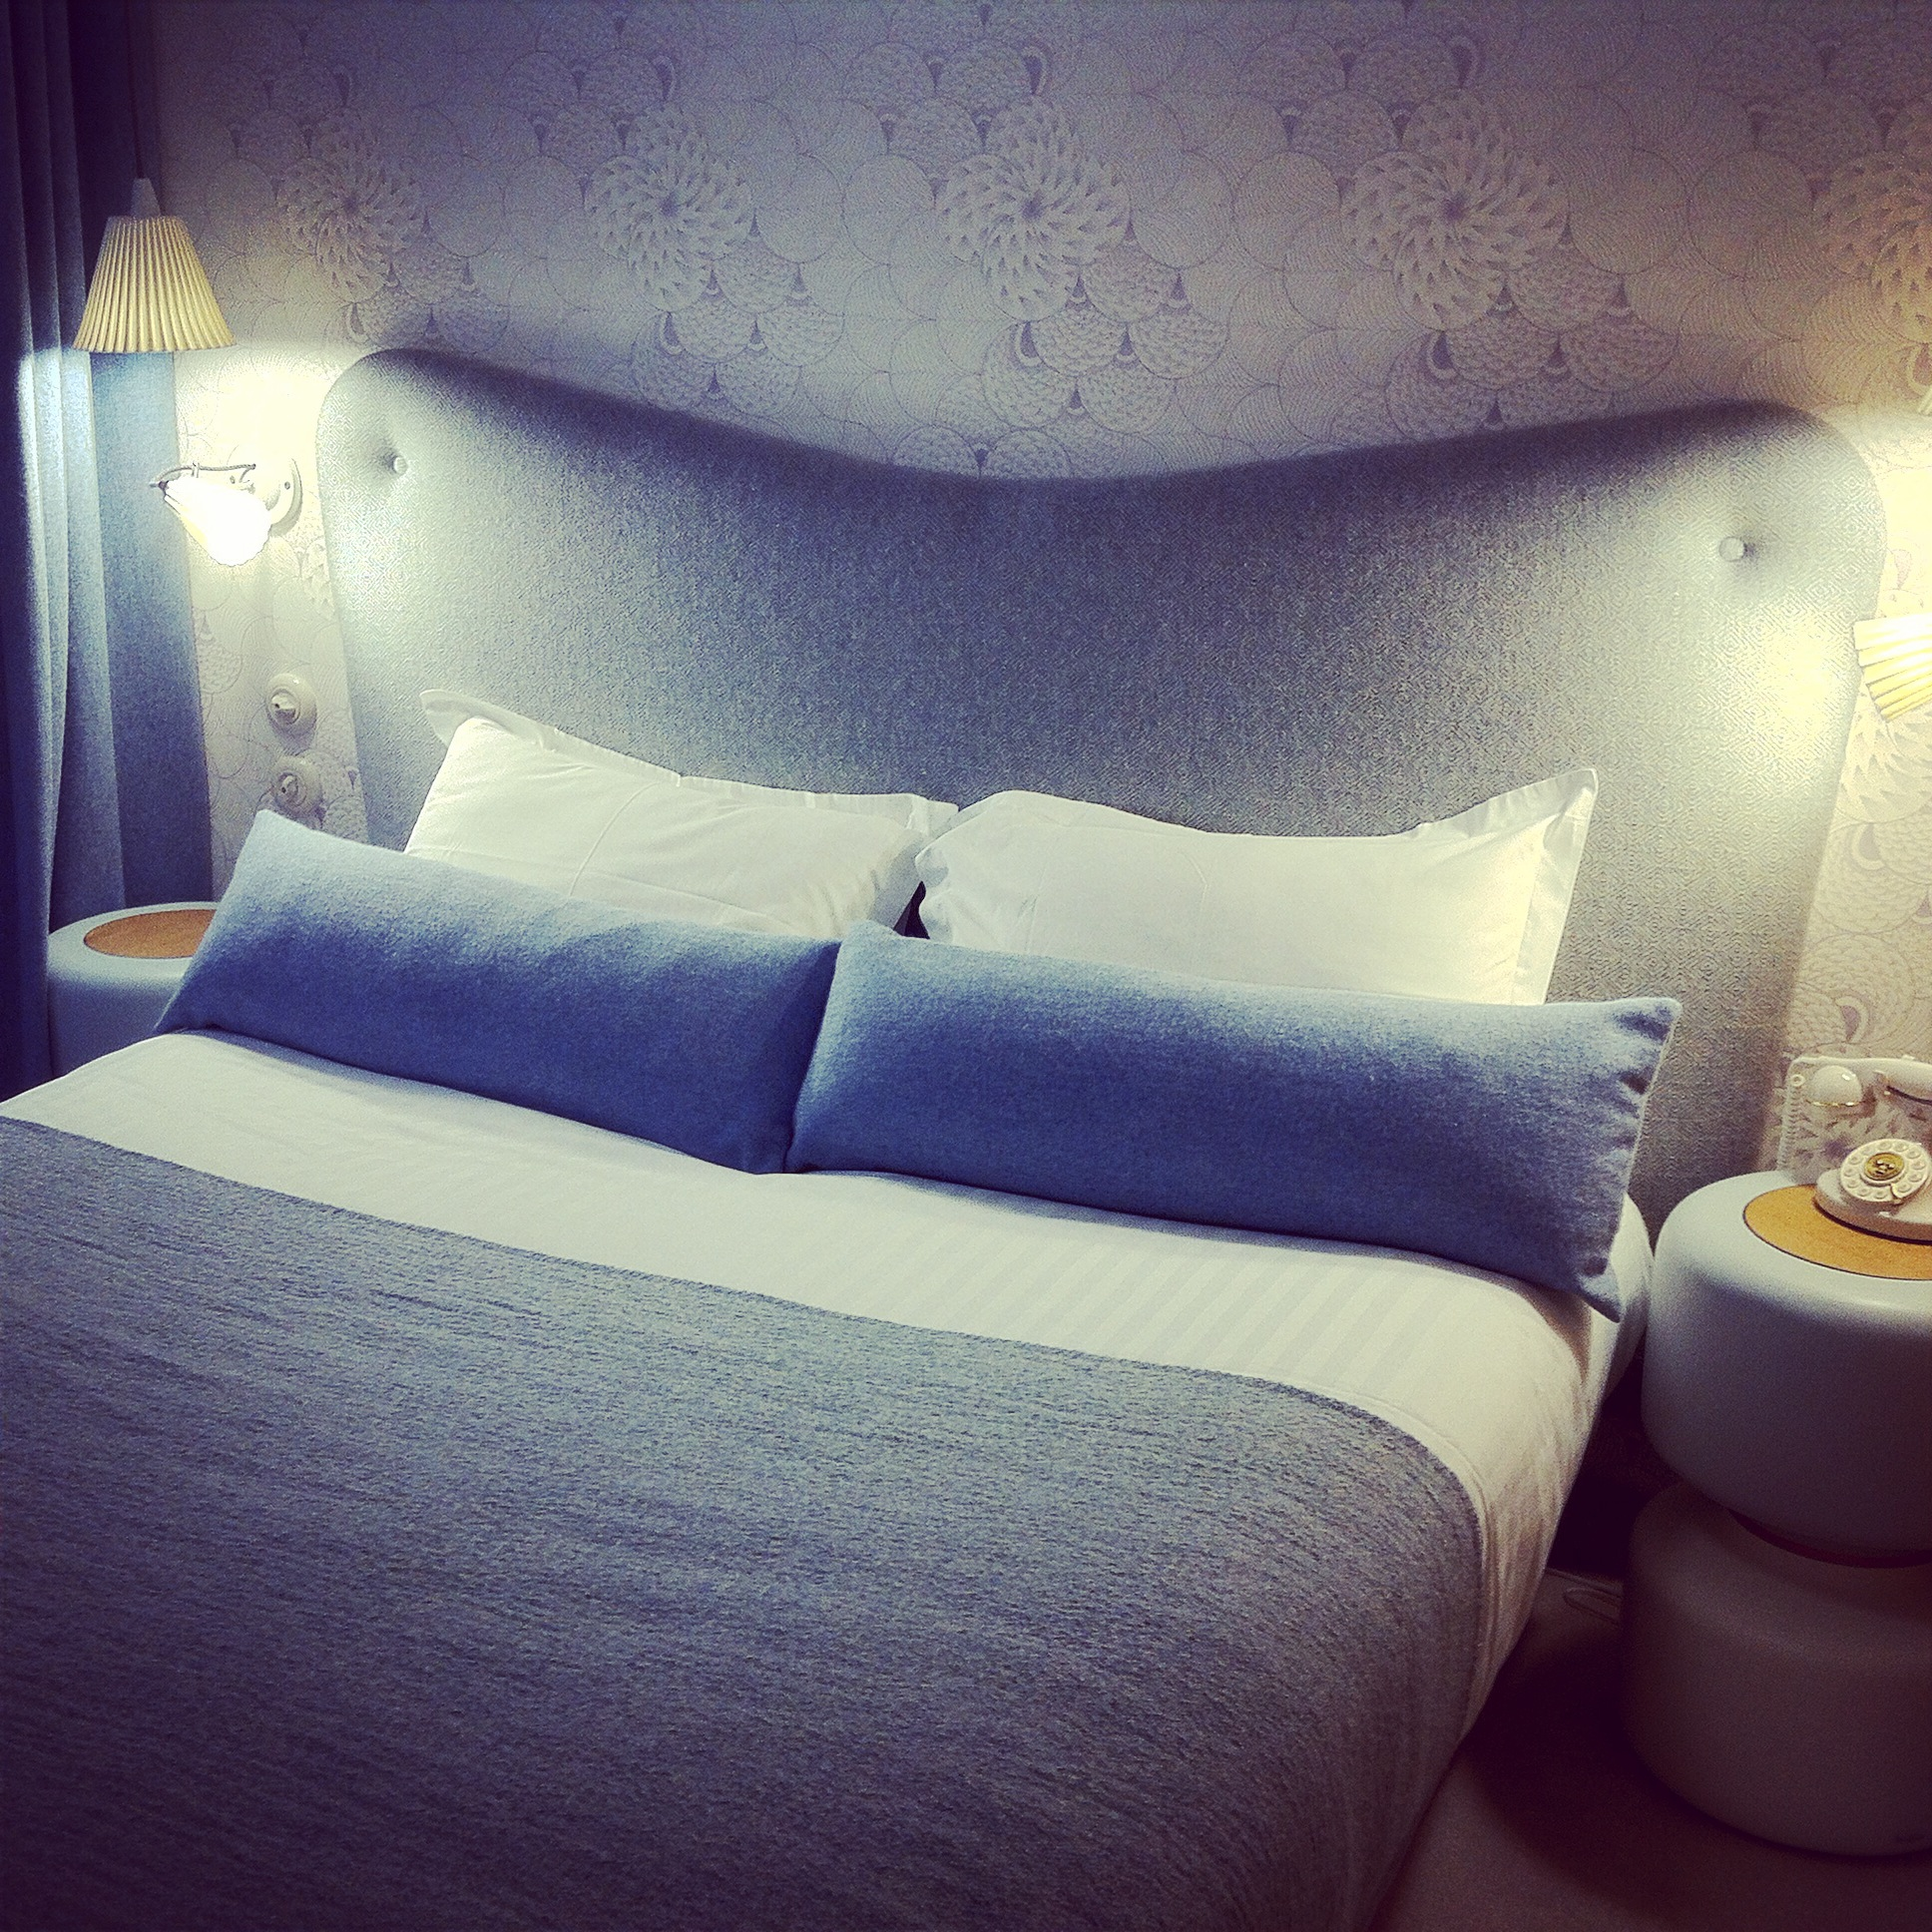 wbc instagram 4 hotel lapin blanc paris 2 wild birds collective. Black Bedroom Furniture Sets. Home Design Ideas